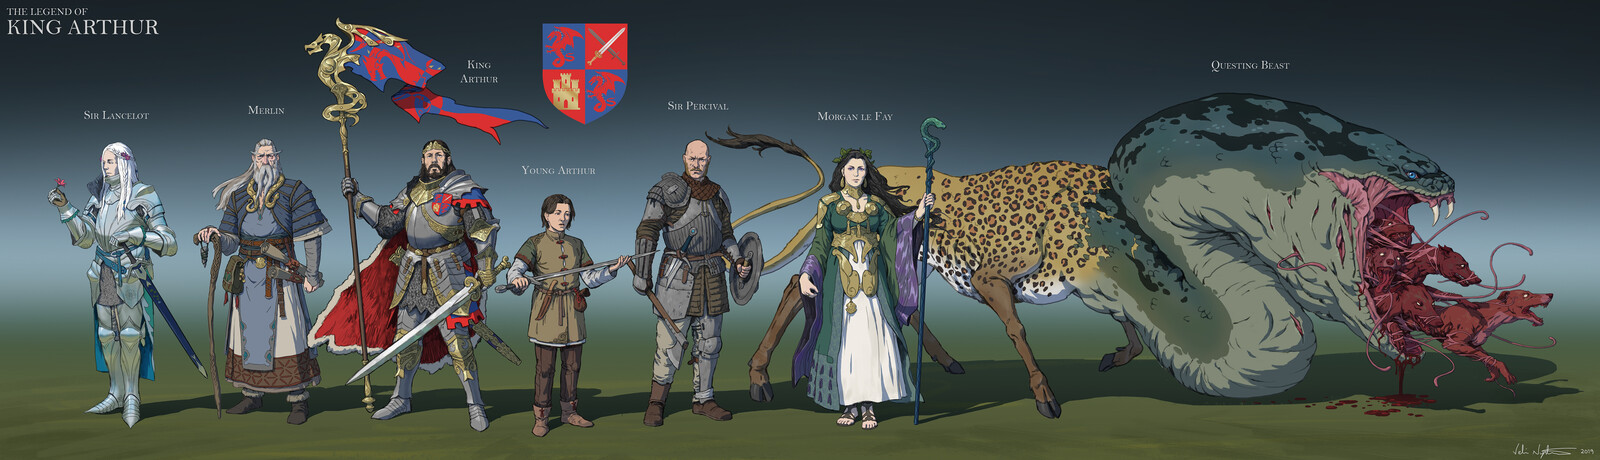 """The Legend of King Arthur"" - character designs"